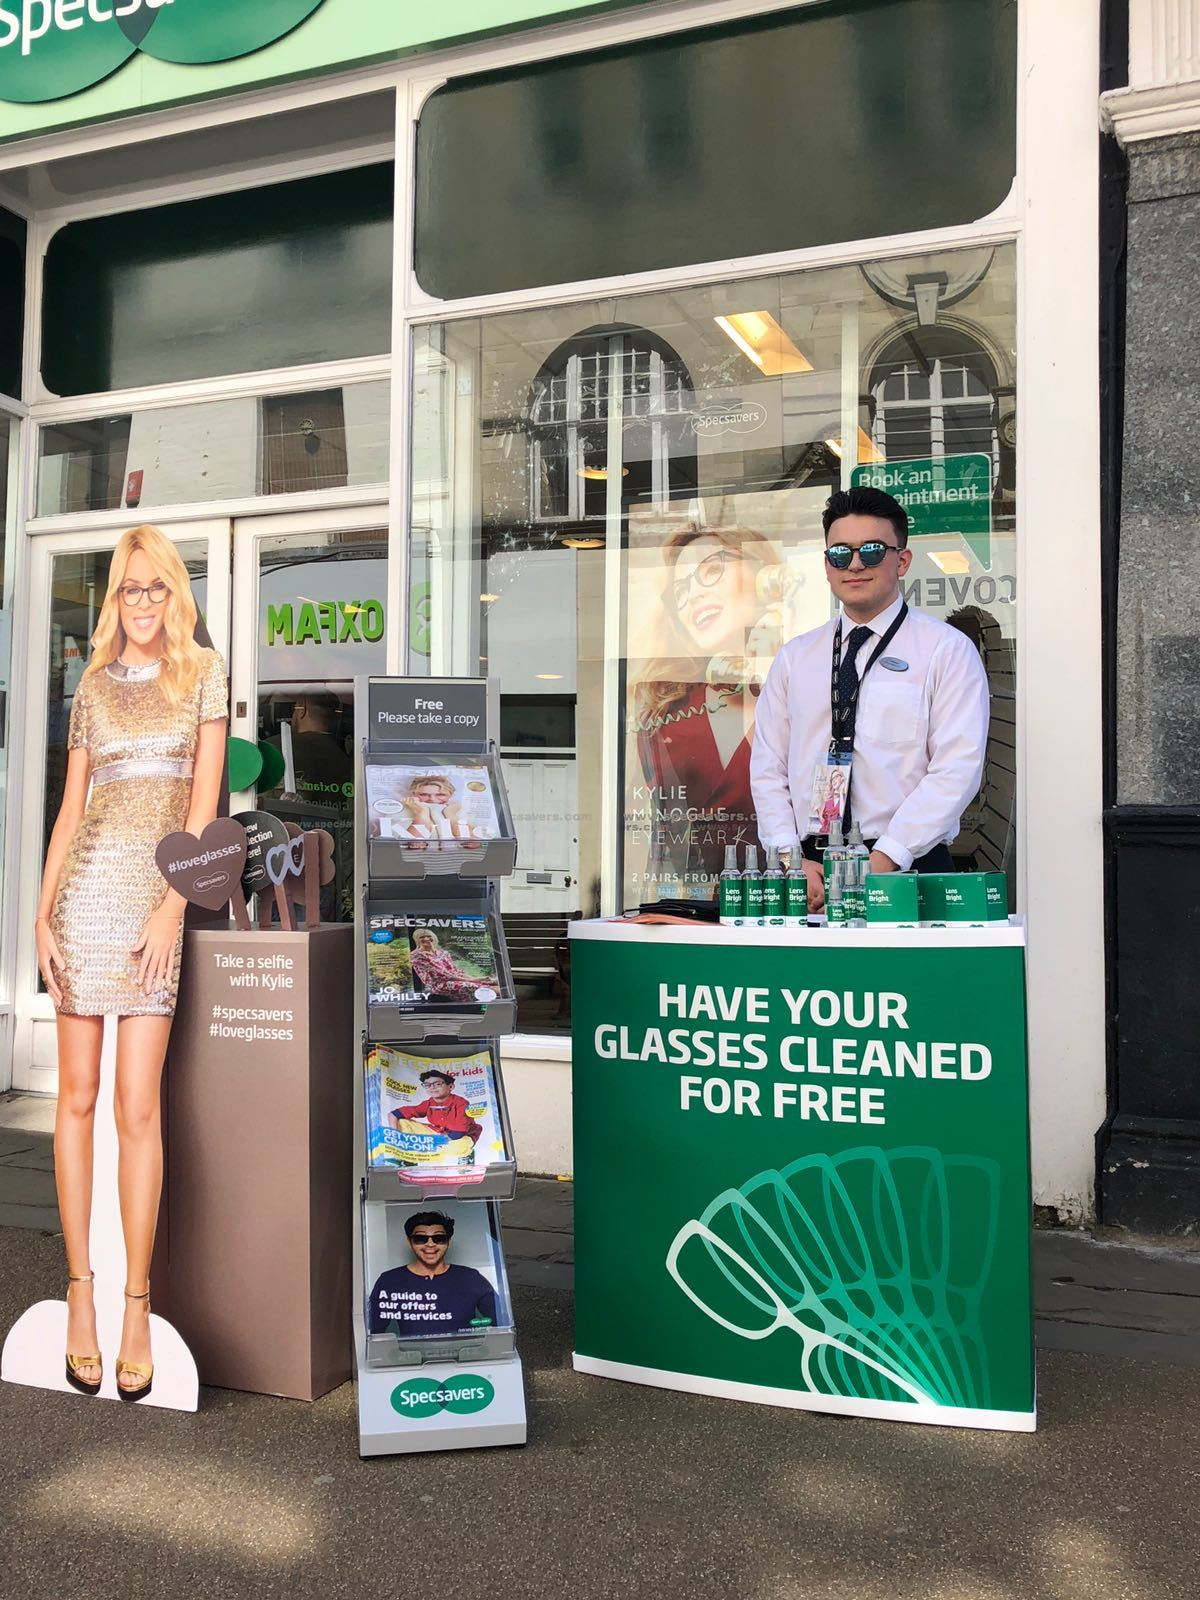 Specsavers are promoting new frames in their Kylie Minogue range